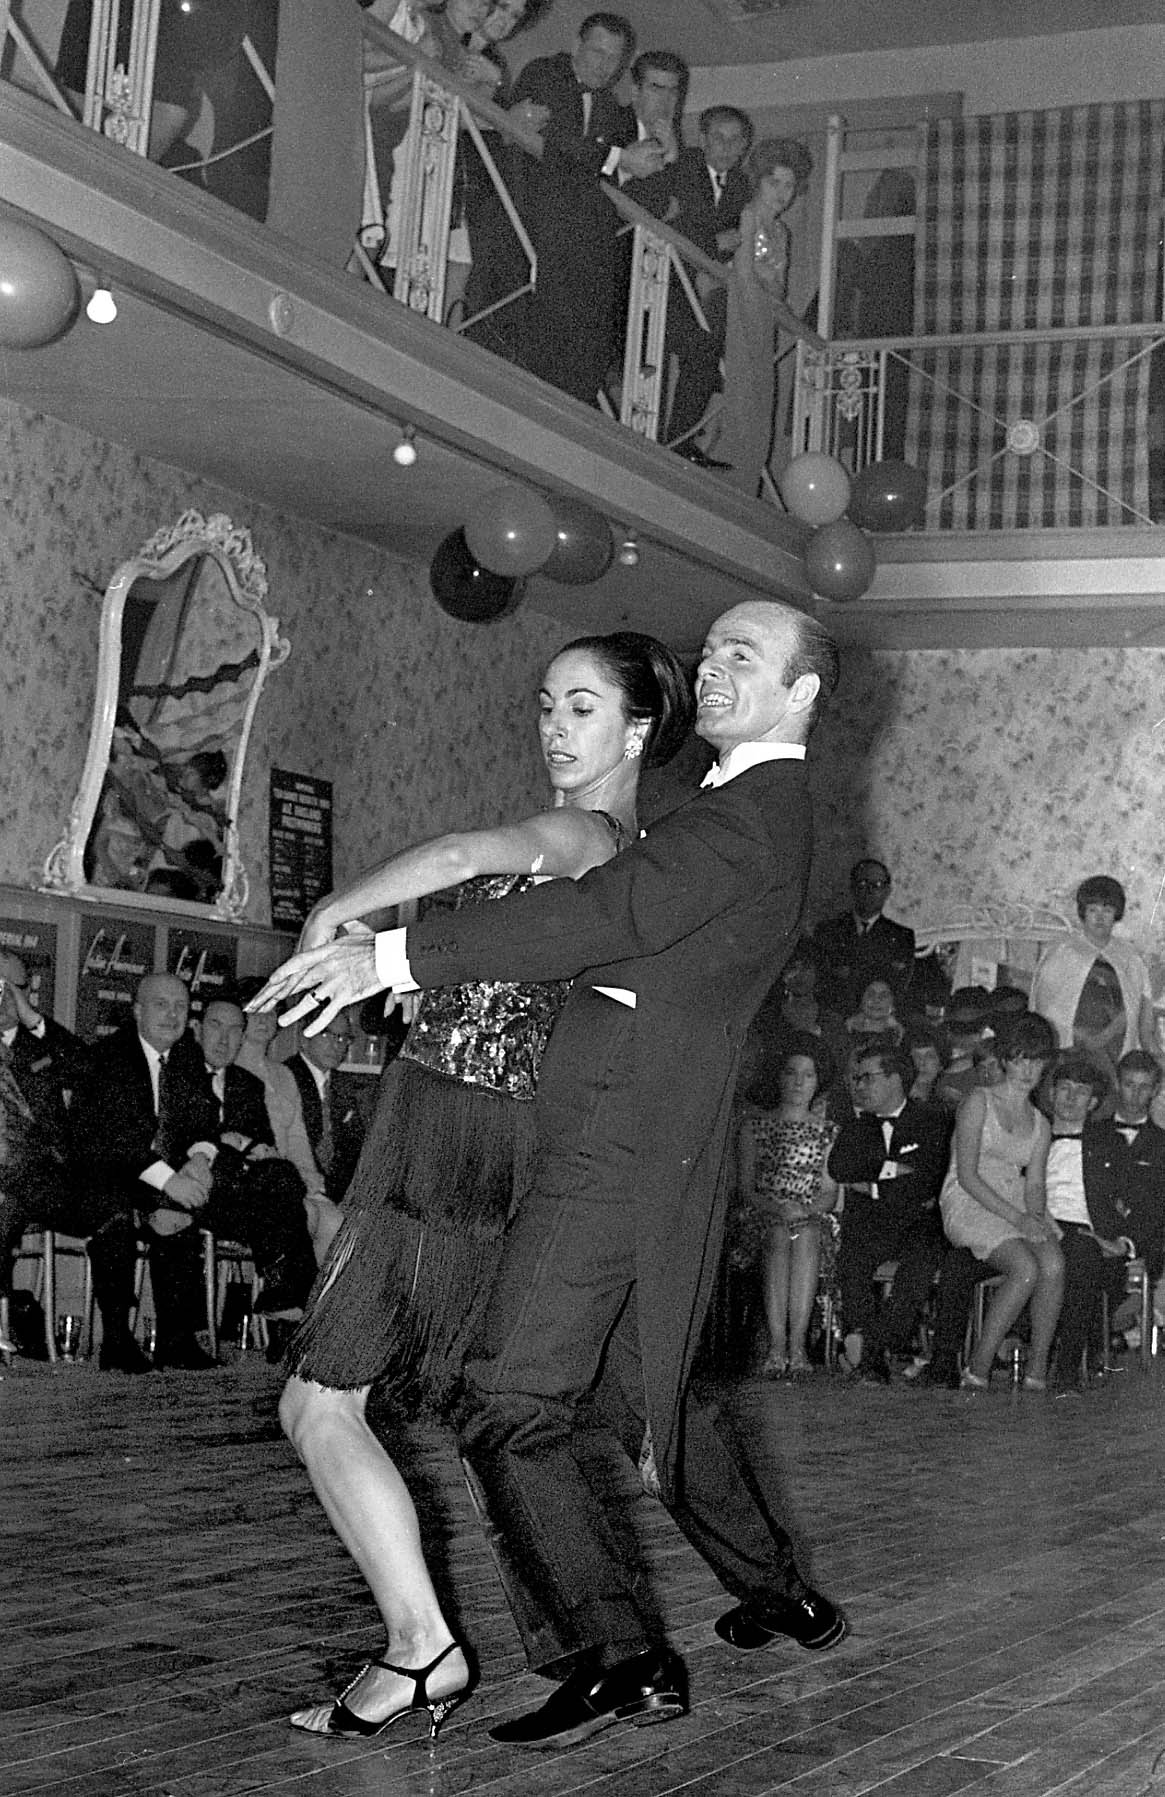 Ballroom dancing at the Arlington Ballroom in January 1968. The original Victorian balcony is in the background.